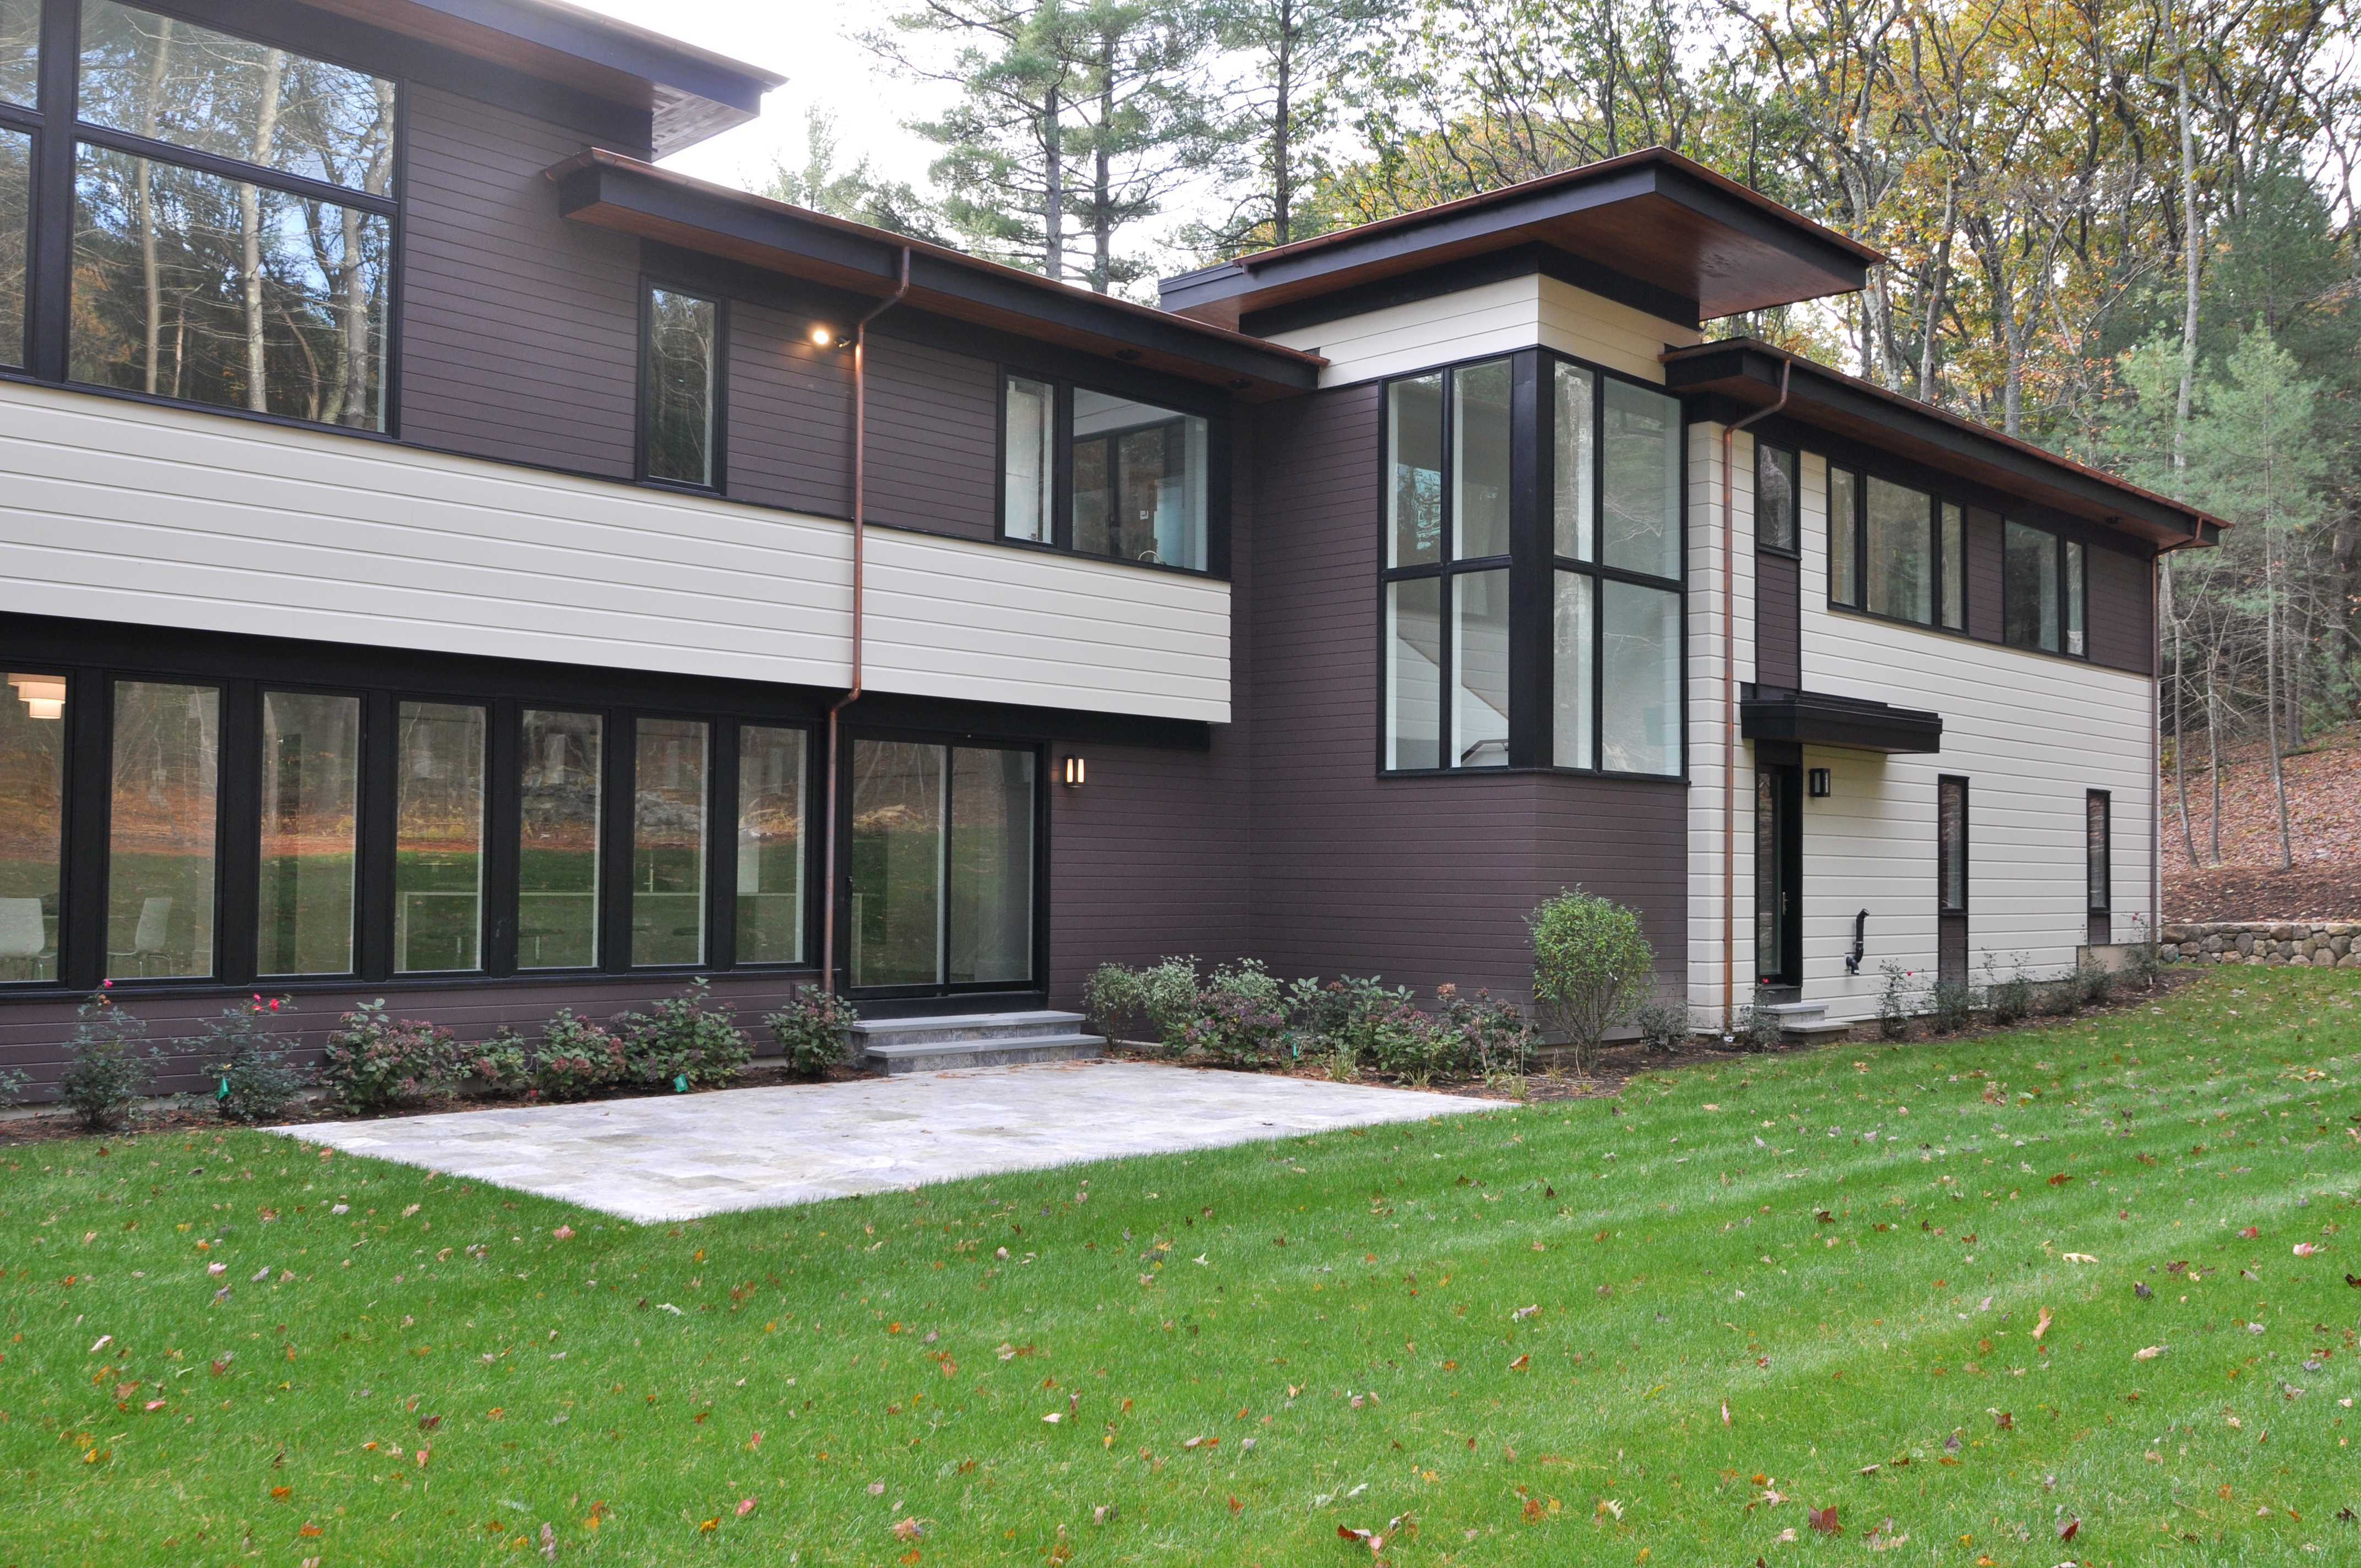 Newly Constructed Modern House in Weston